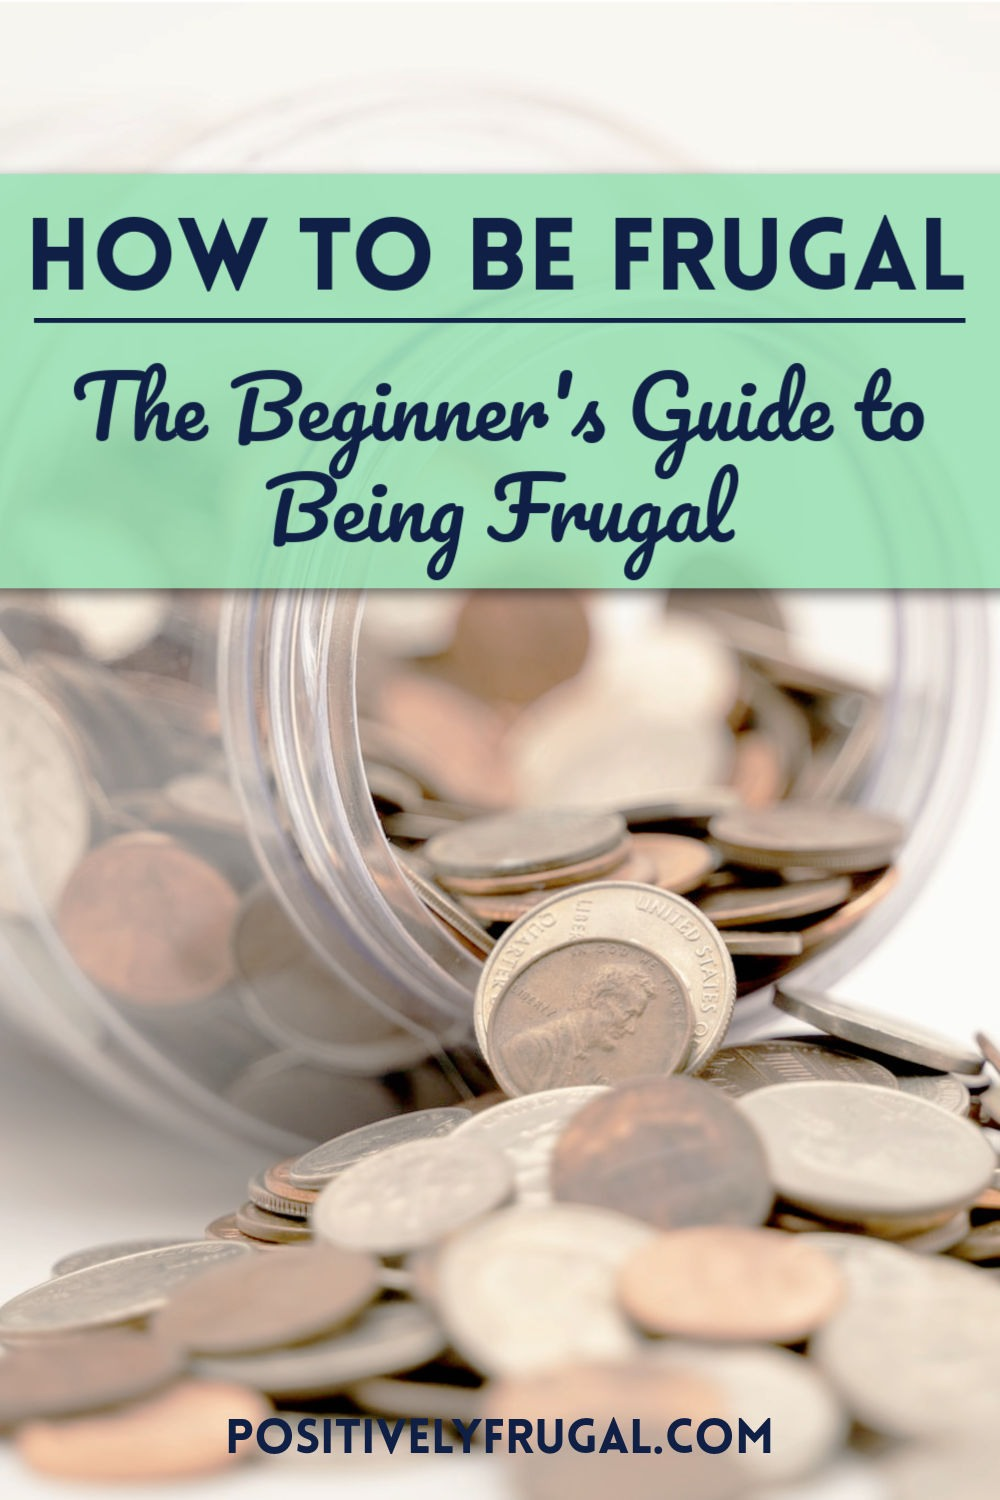 Beginner's Guide for How To Be Frugal by PositivelyFrugal.com